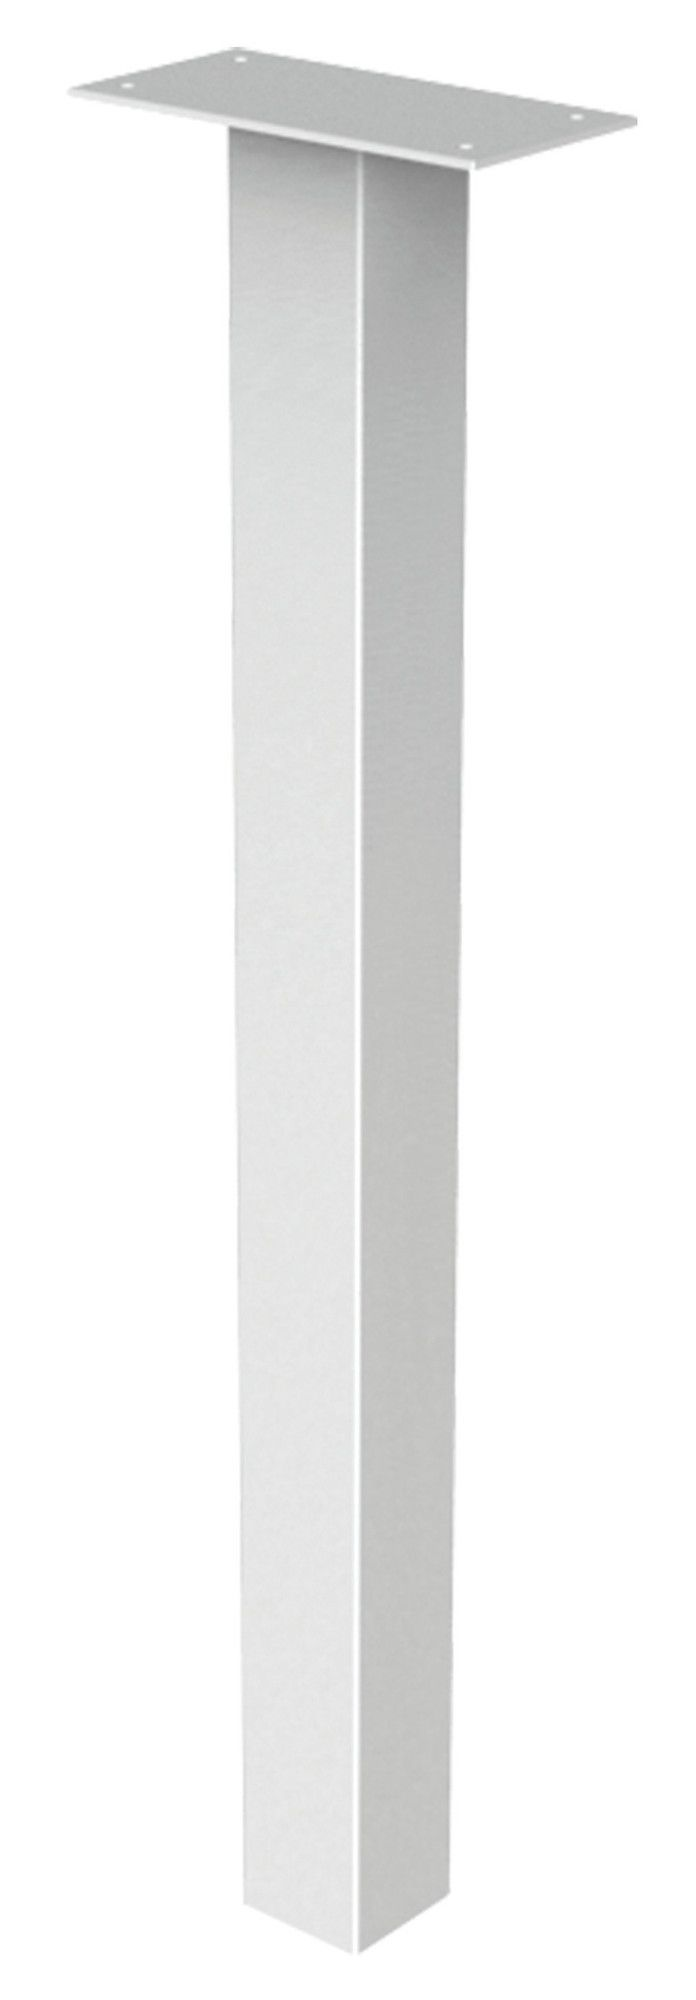 Standard In-Ground Post